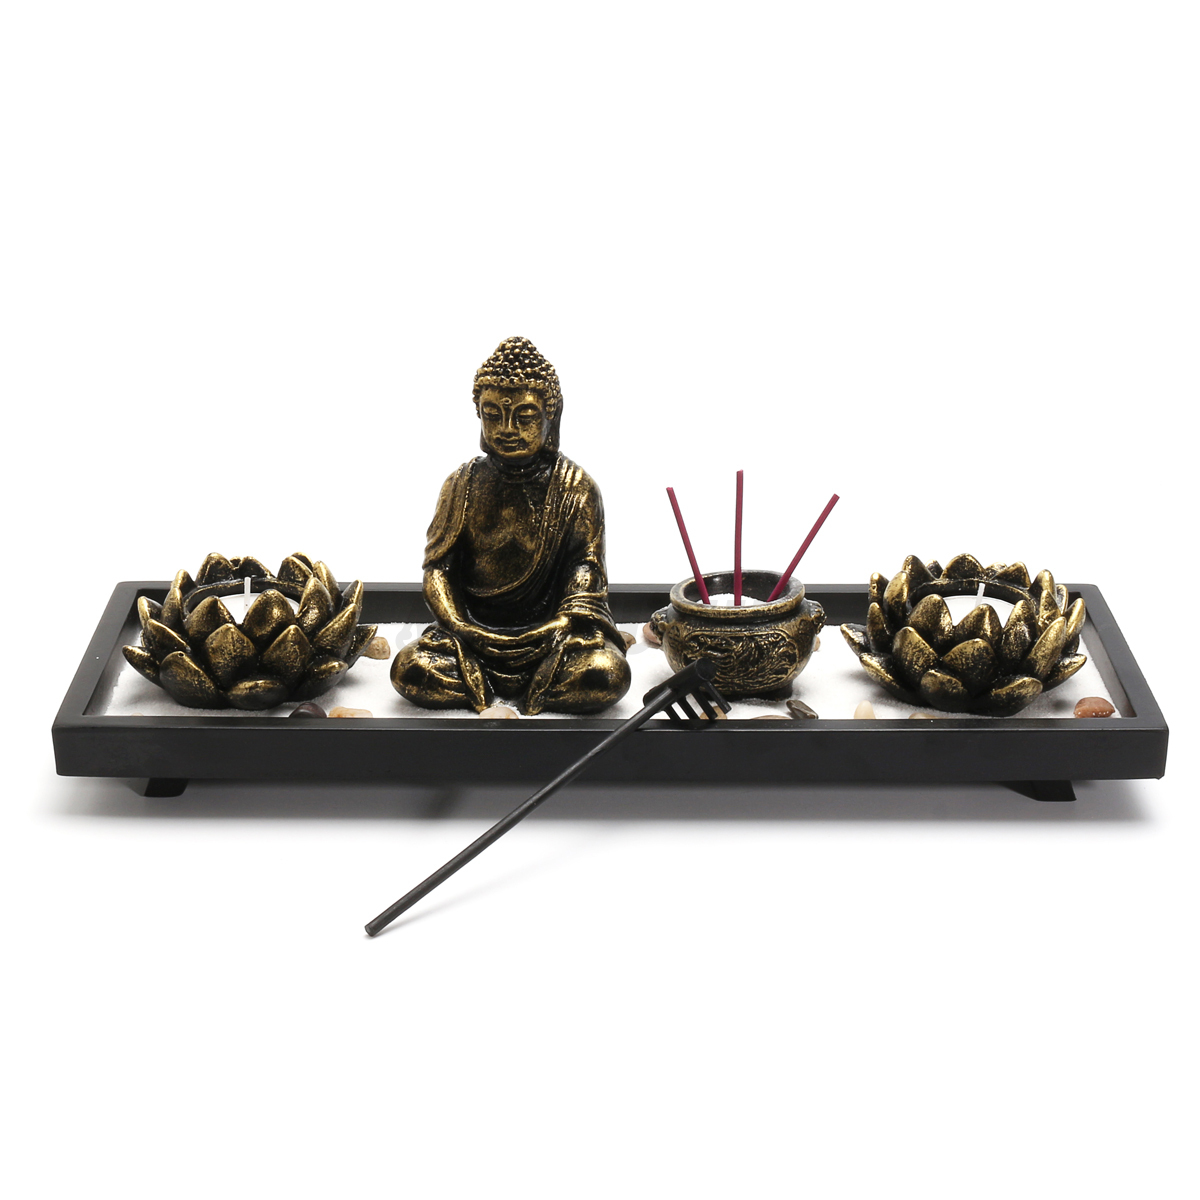 zen garden sand tray kit buddha meditation incense burner rake feng shui decor ebay. Black Bedroom Furniture Sets. Home Design Ideas